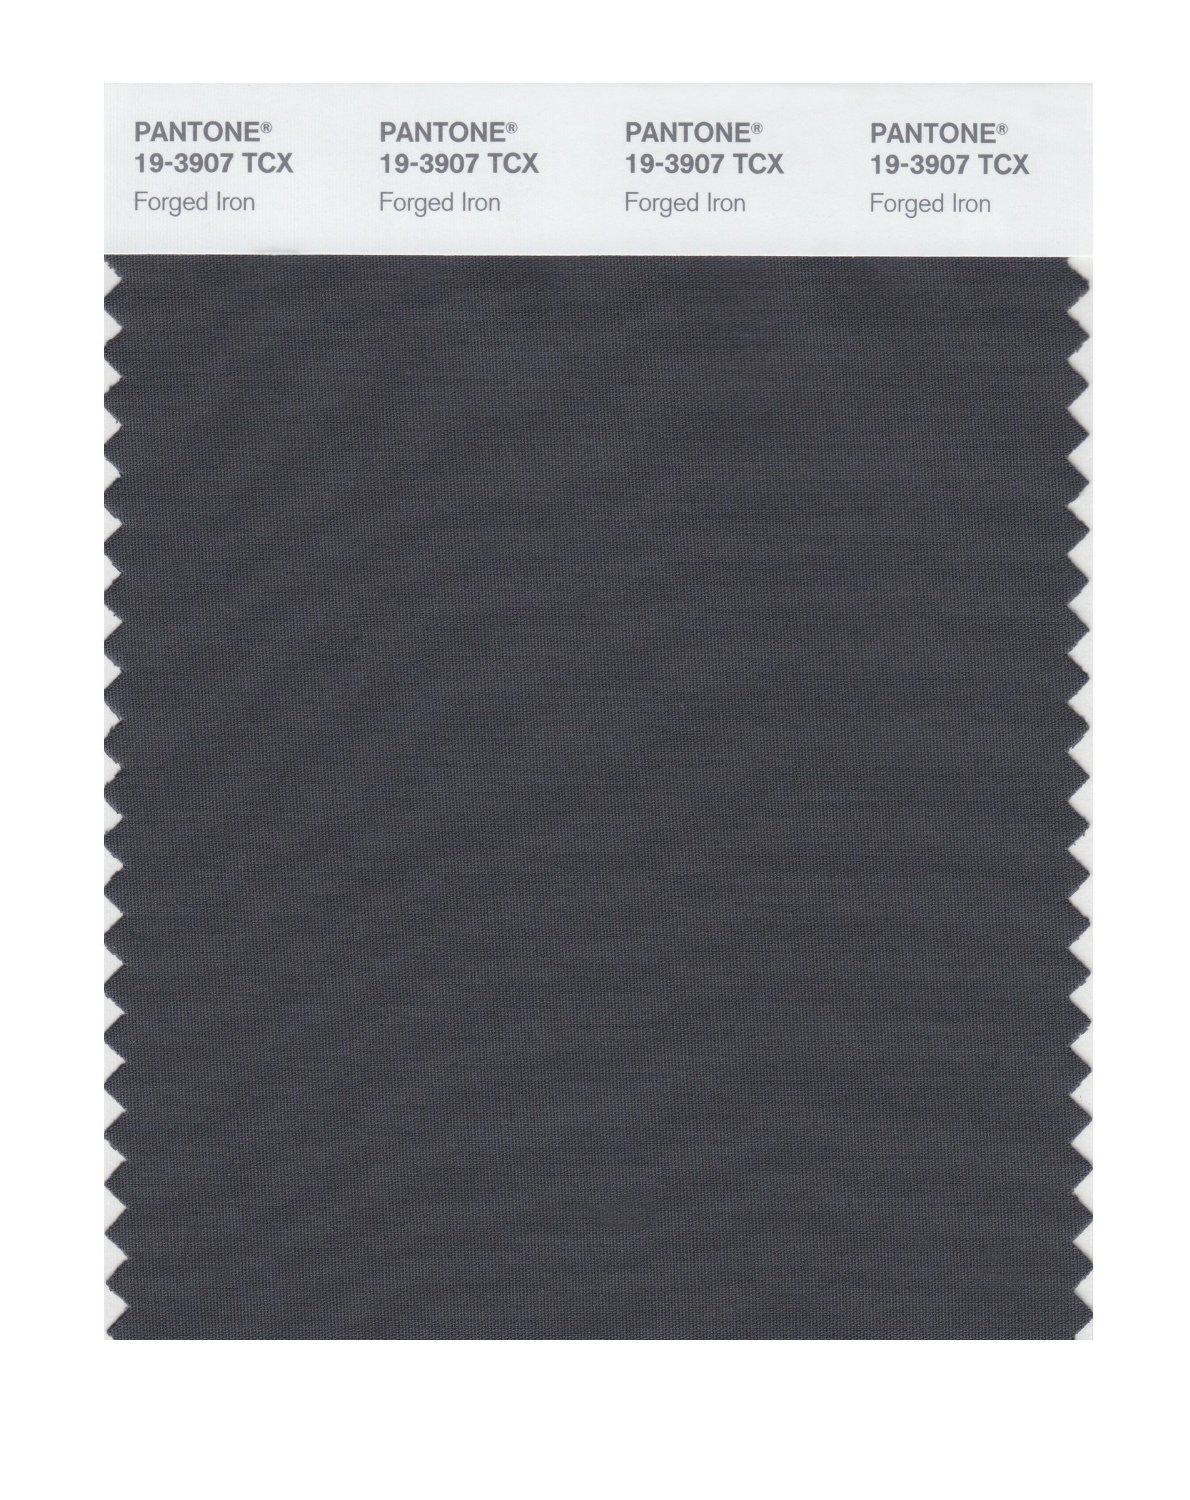 Pantone Smart Swatch 19-3907 Forged Iron